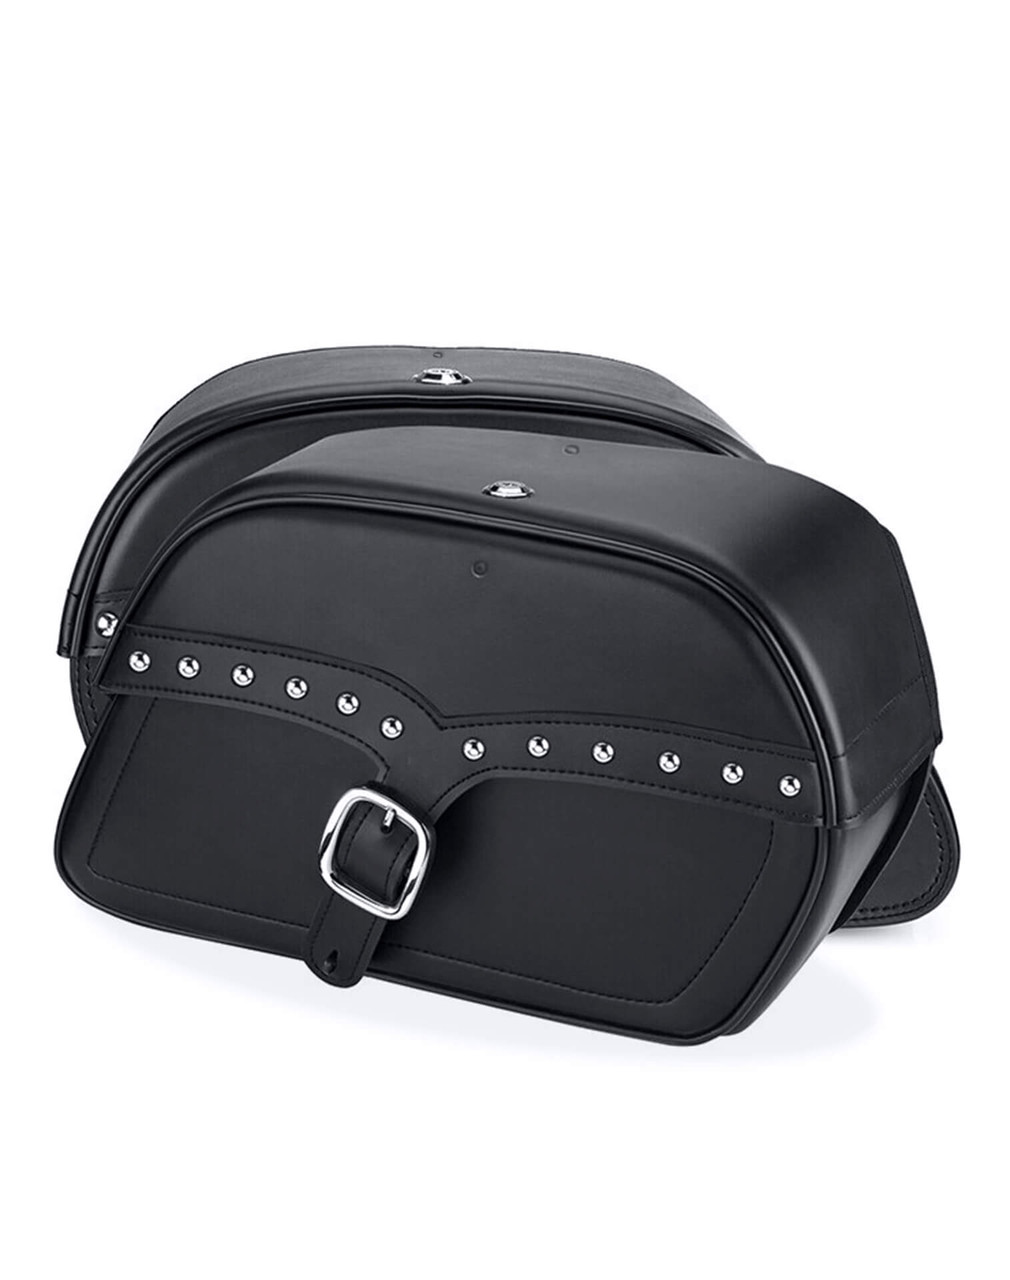 Triumph Thunderbird Charger Single Strap Studded Large Motorcycle Saddlebags Both Bags View